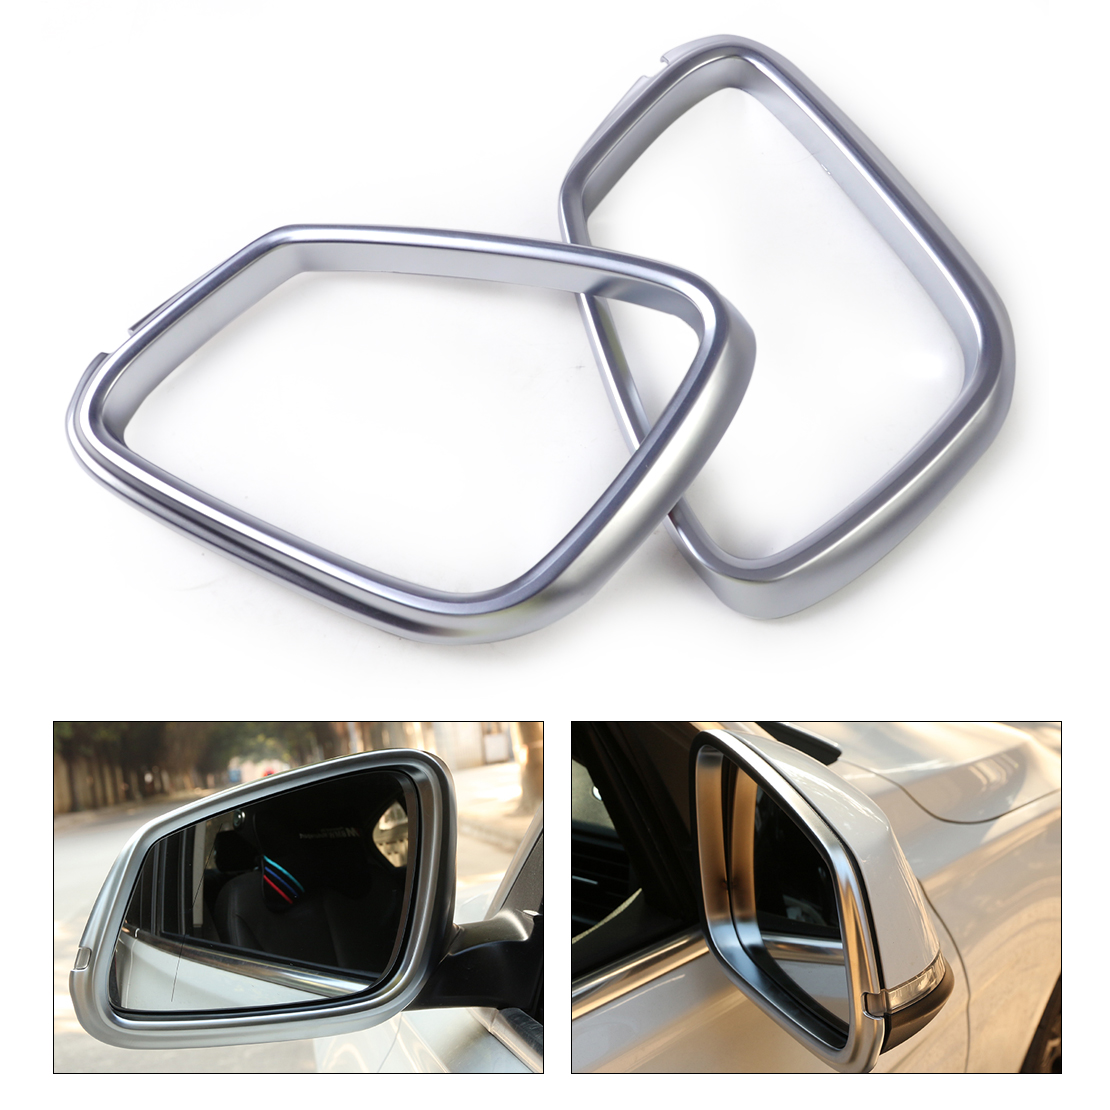 цена на DWCX 2Pcs Chrome Left Right Side Door Rearview Reflector Mirror Protector Frame Cover Trim for BMW 2 Series 218i 2014-2016